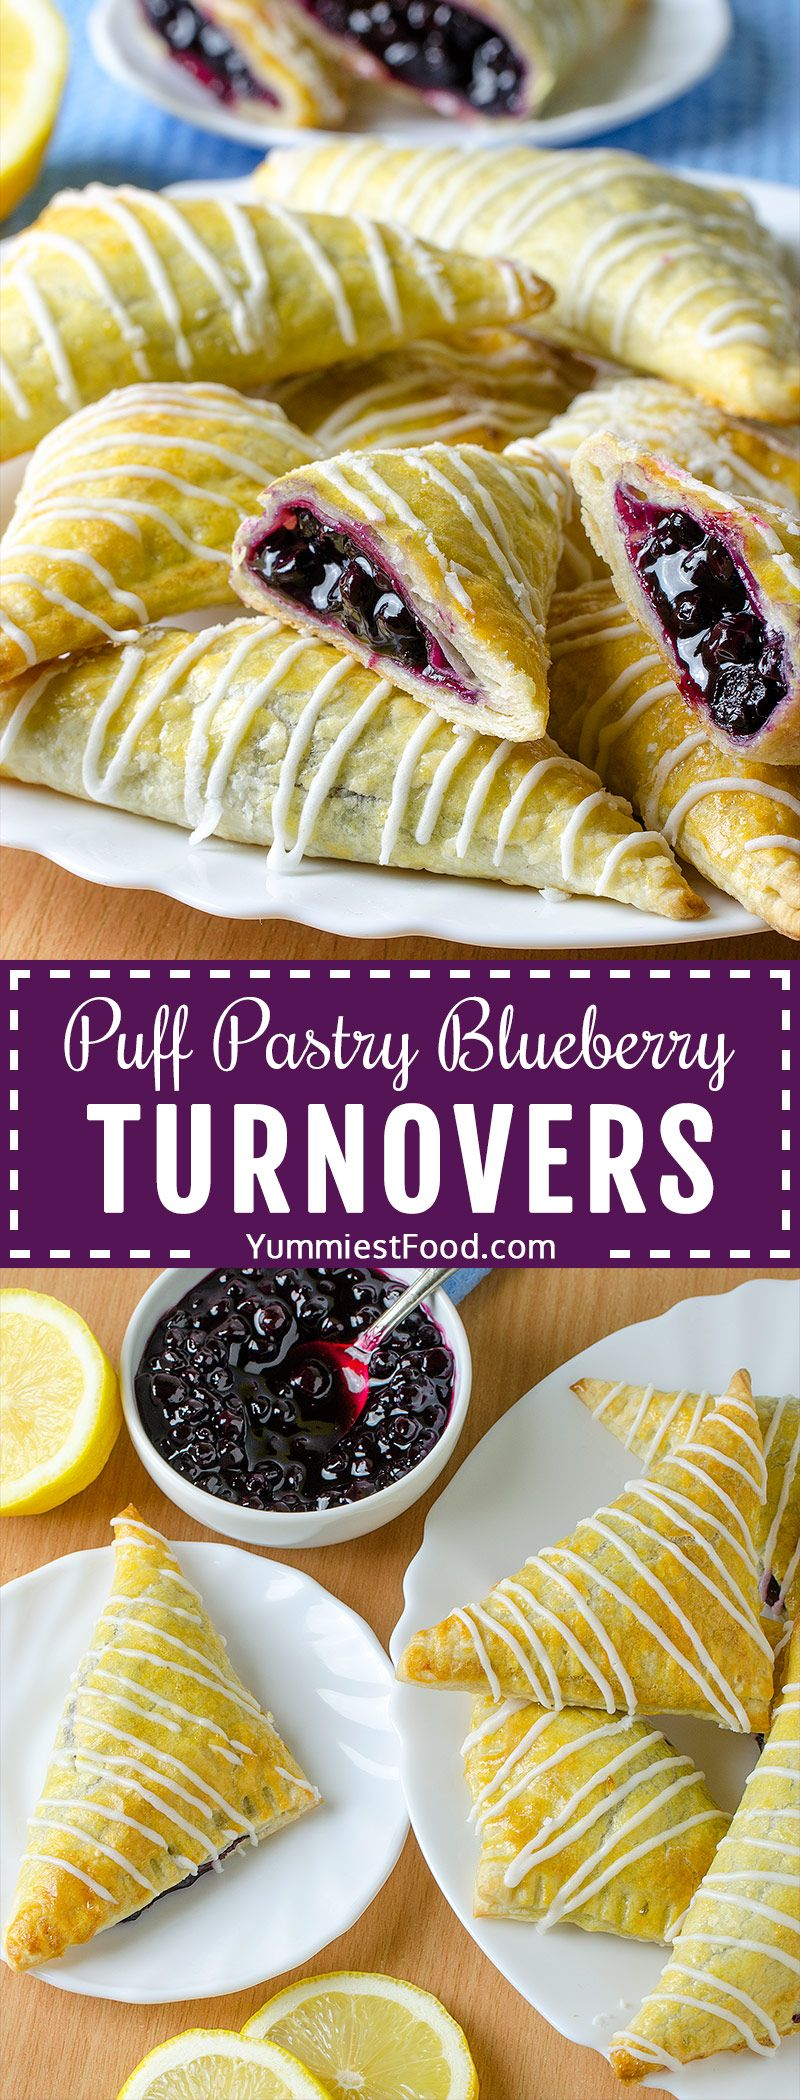 Easy Puff Pastry Blueberry Turnovers is part of Easy puff pastry - EASY PUFF PASTRY BLUEBERRY TURNOVERS   These Puff Pastry Blueberry Turnovers are light, flaky, filled with blueberry filling then drizzled with lemon glaze  A perfect crispy treat for breakfast or dessert!